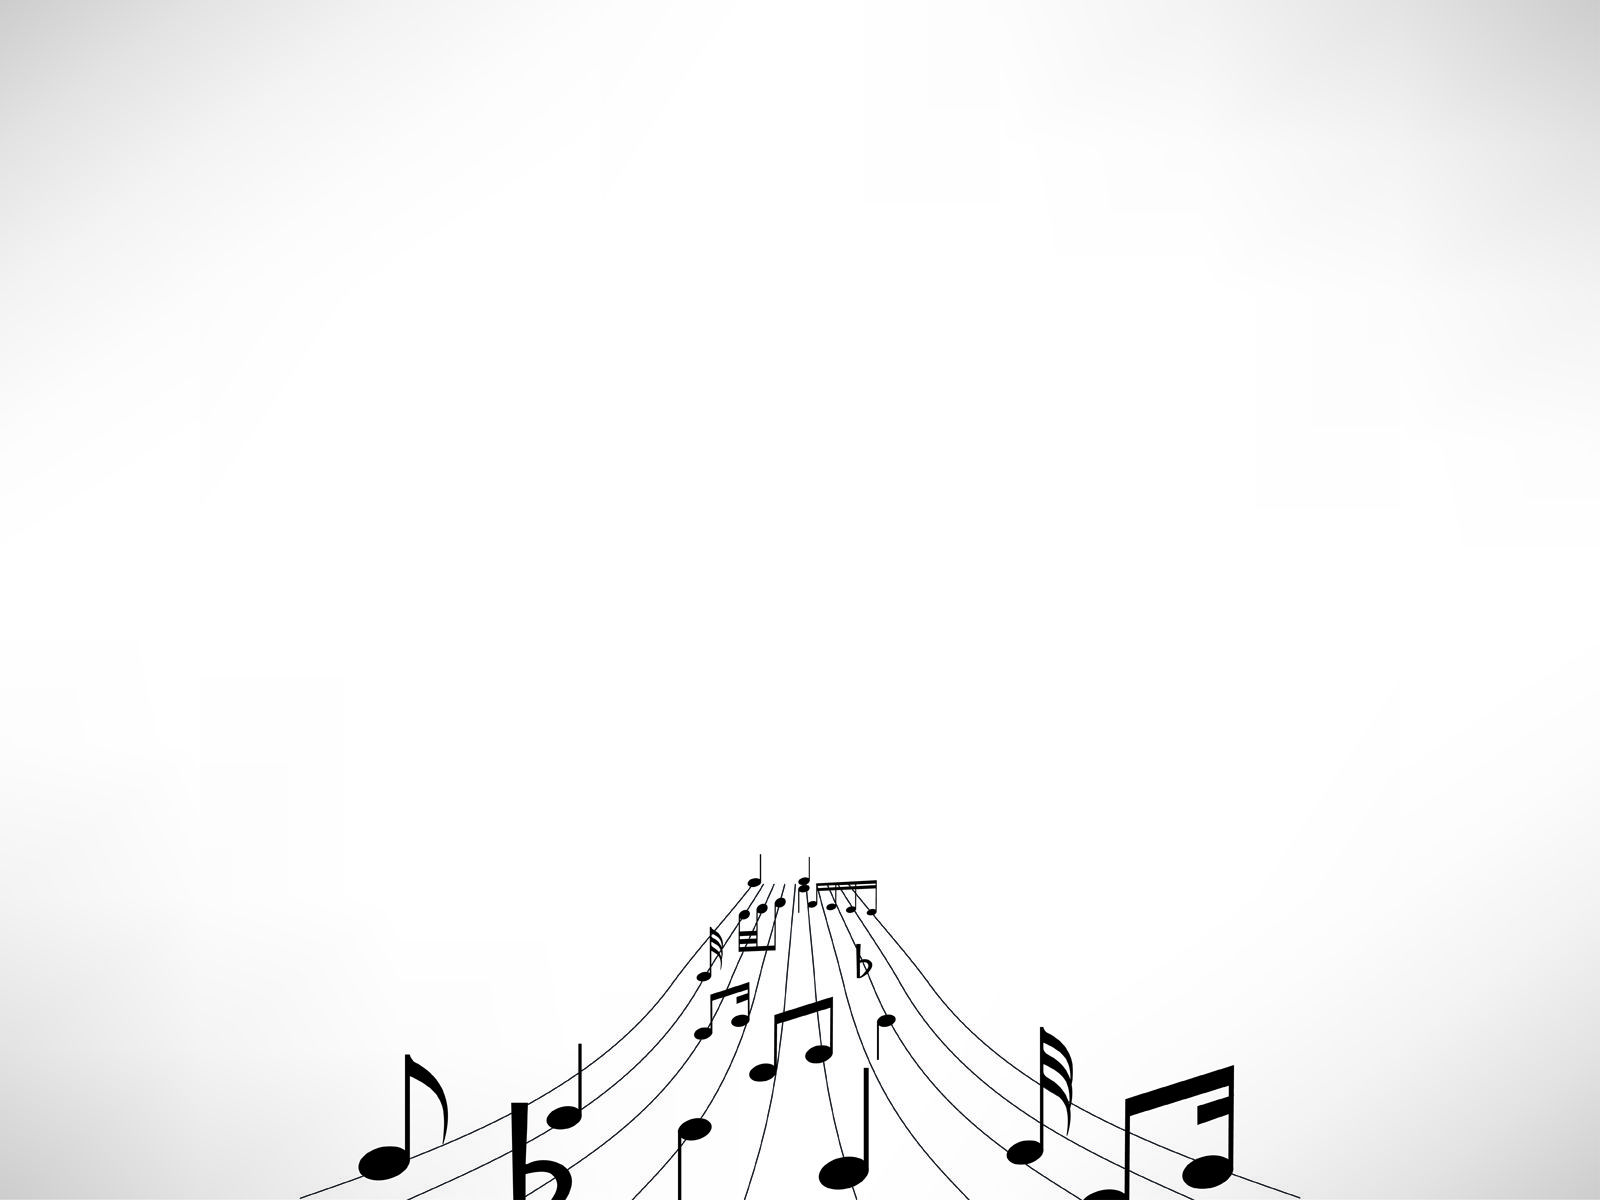 Music notes powerpoint template ppt backgrounds black ppt music notes powerpoint template ppt backgrounds black voltagebd Image collections